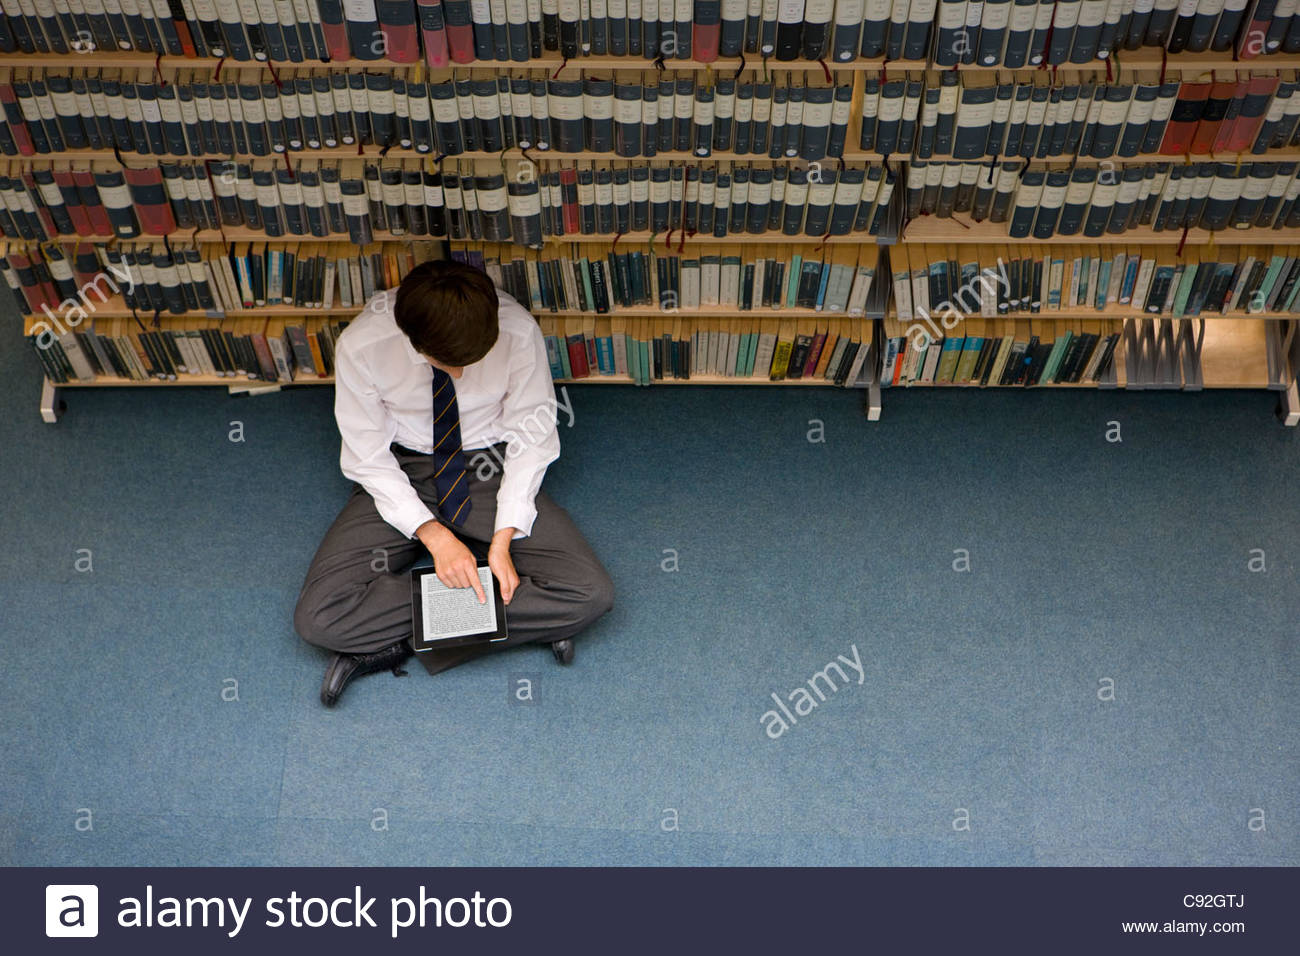 Male student reading electronic book on digital tablet in library - Stock Image